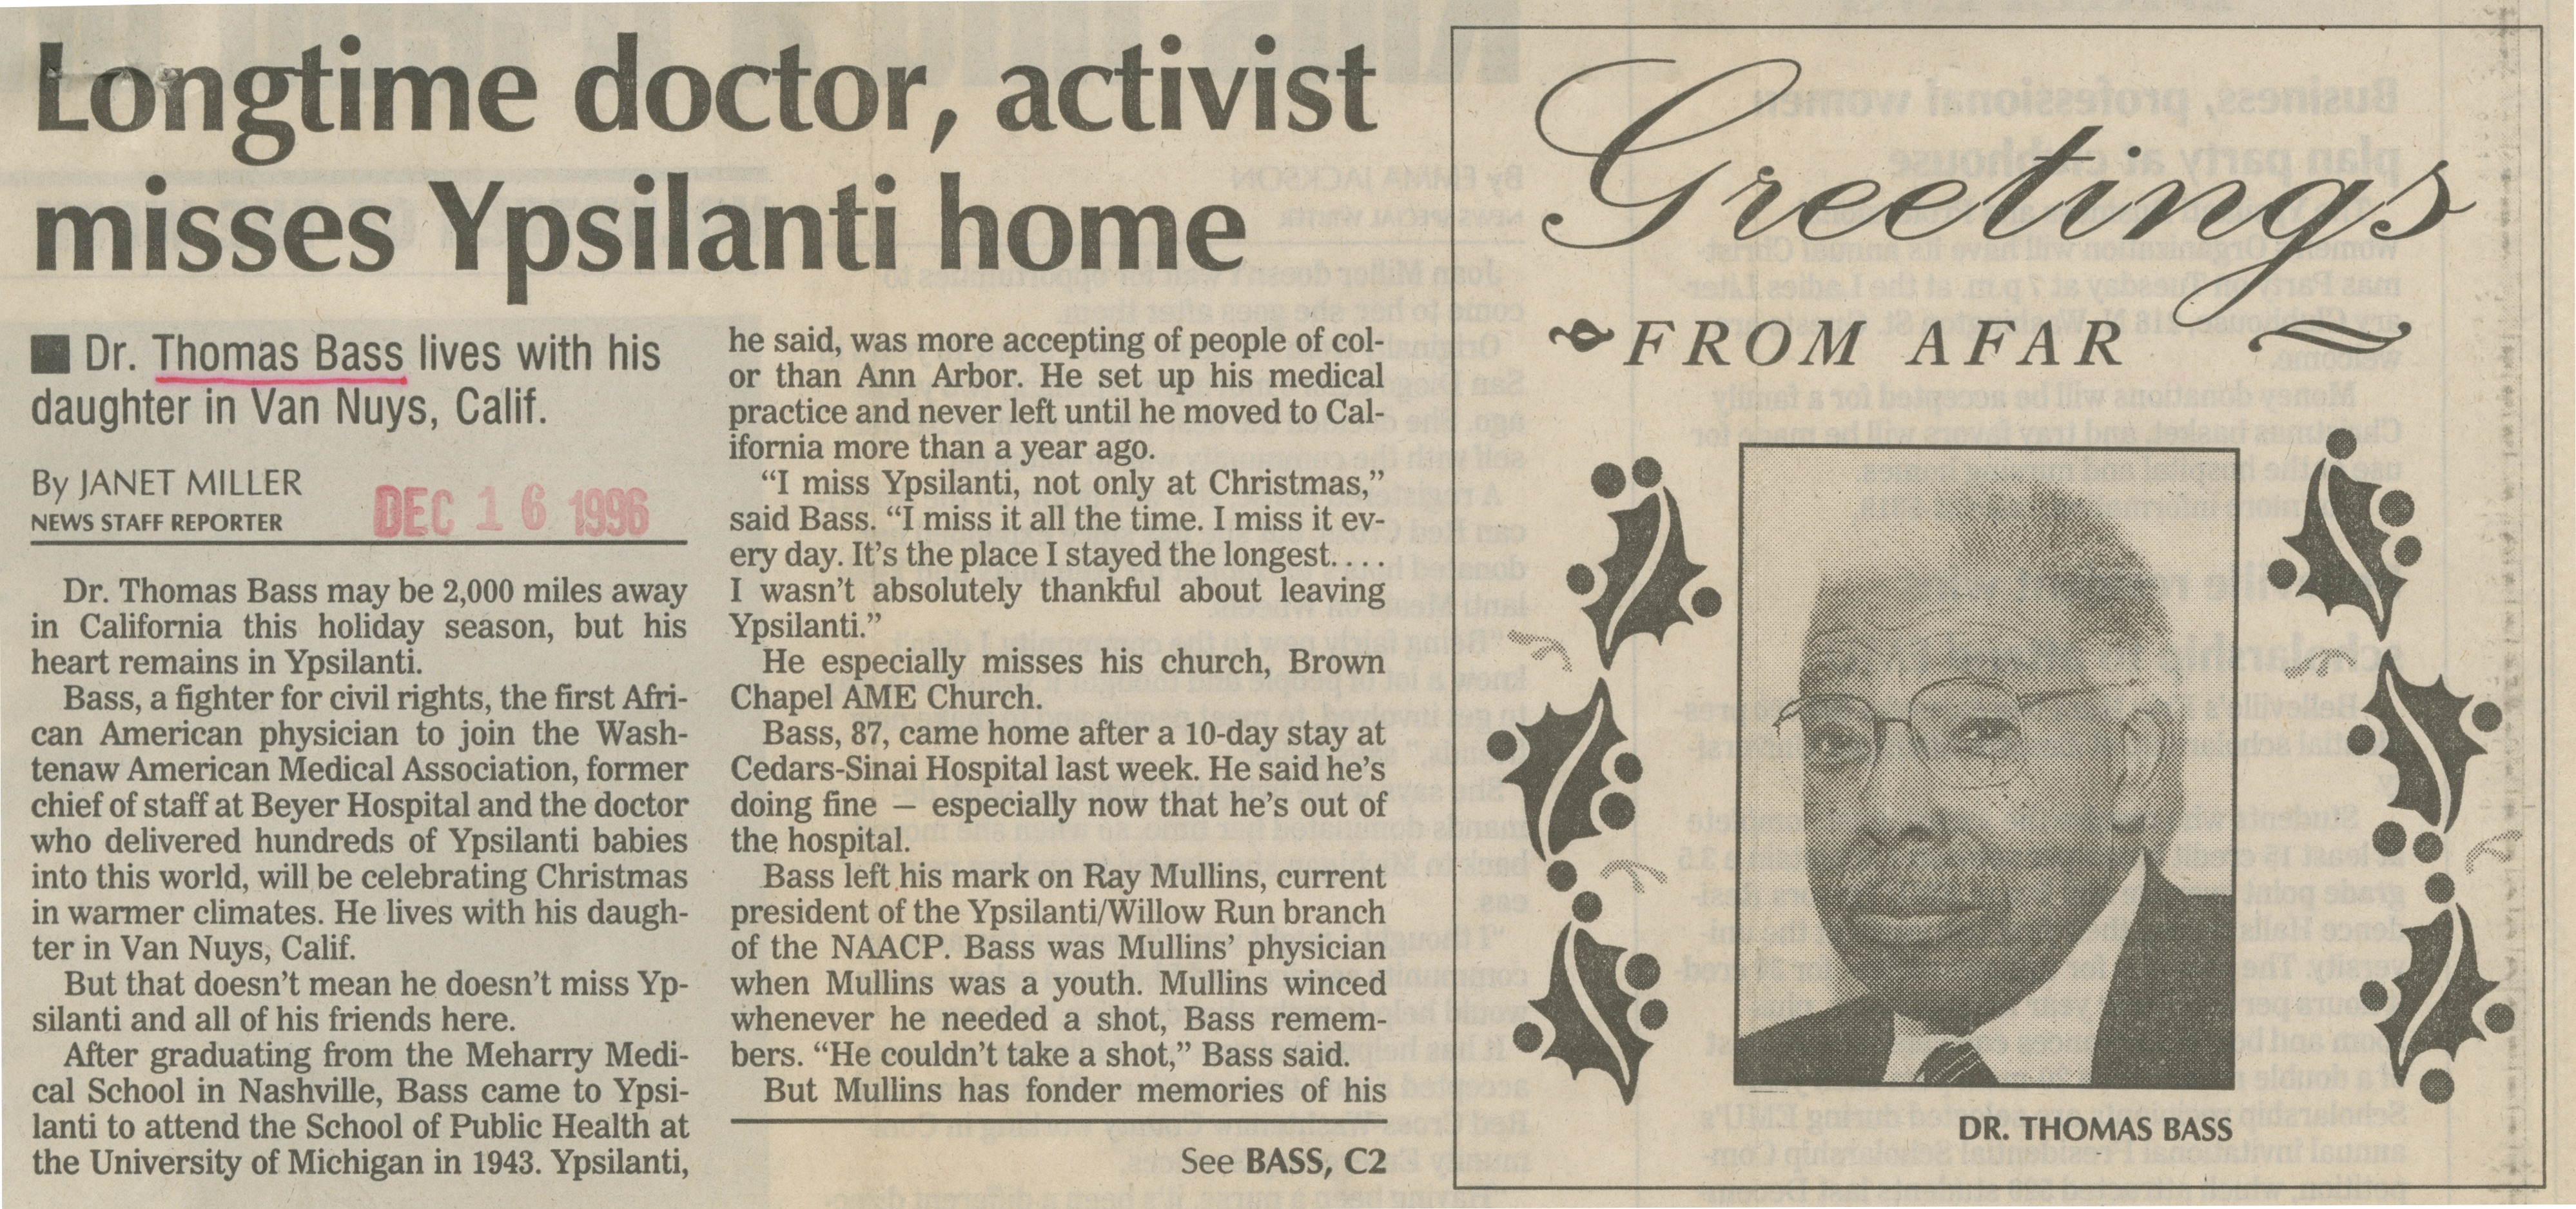 Longtime doctor, activist misses Ypsilanti home image